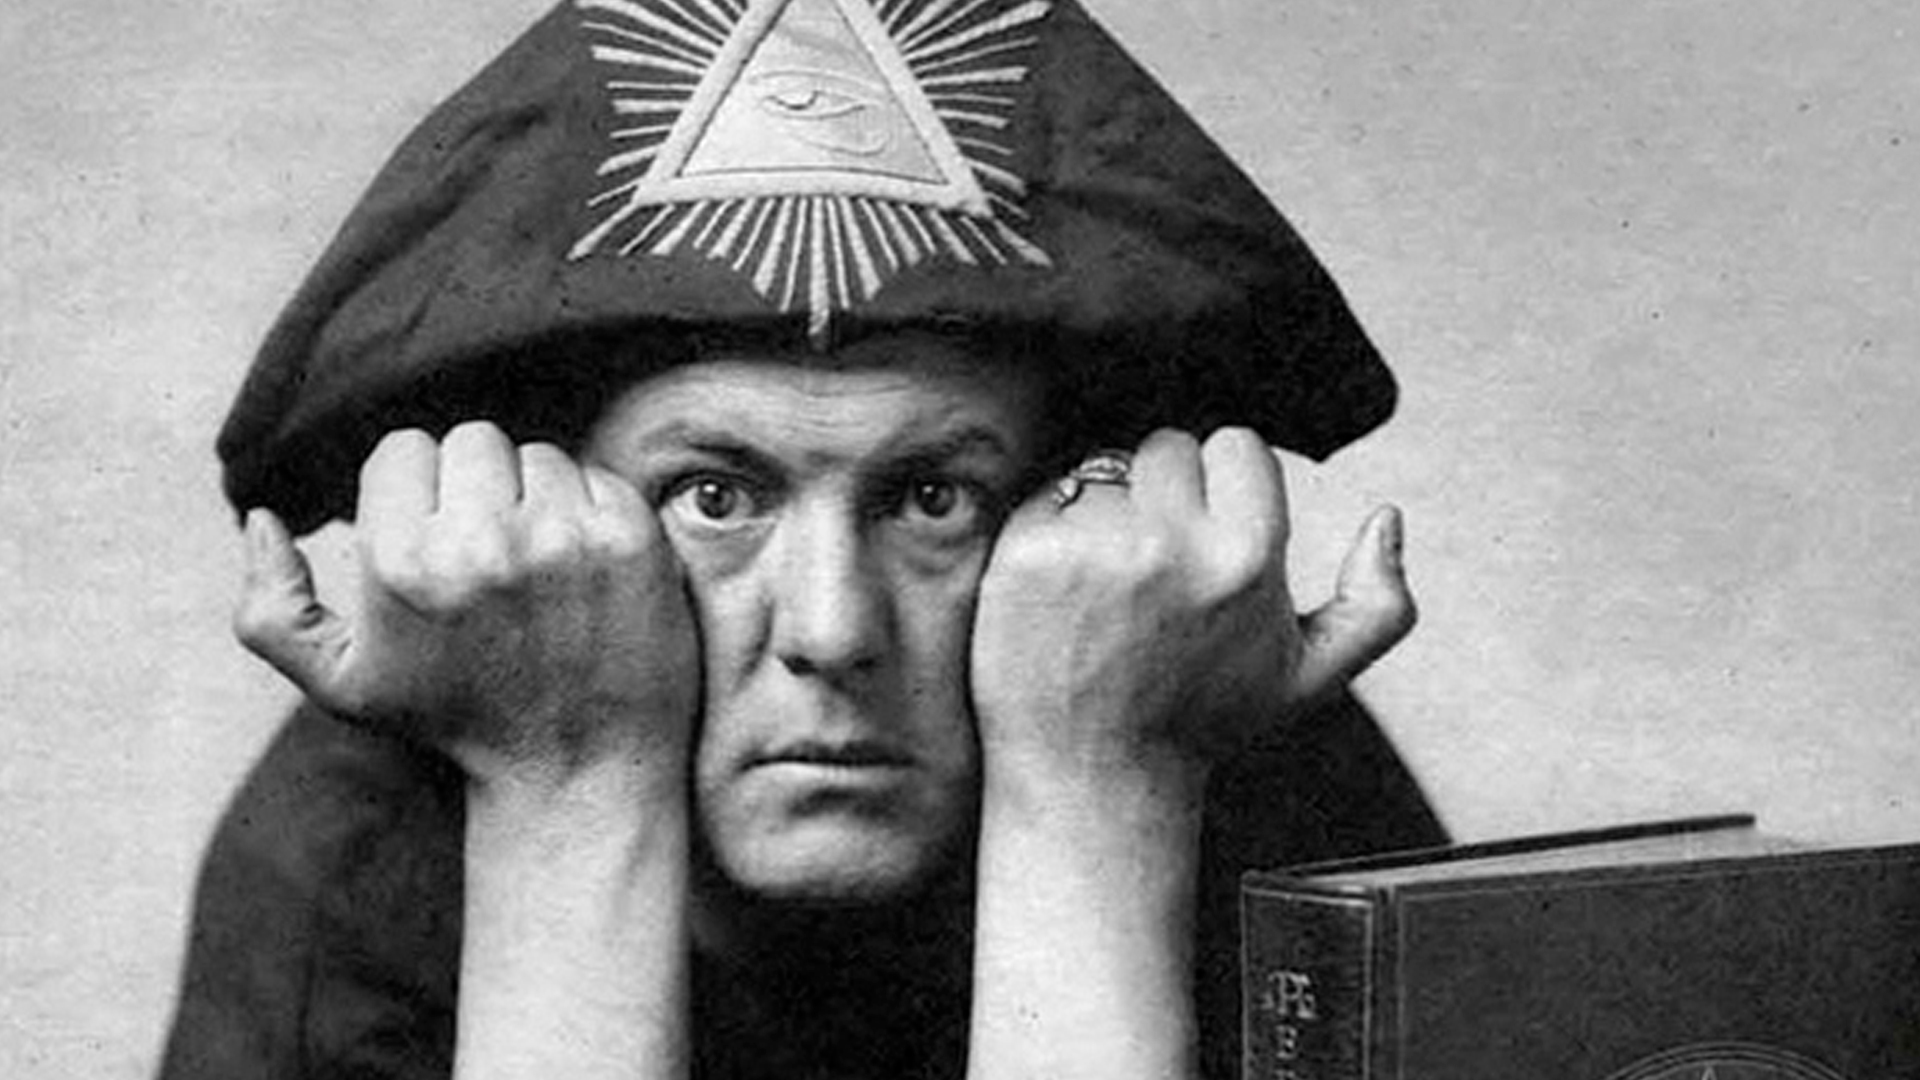 crowley guys Born edward alexander crowley in beast aleister crowley felt the need to keep it hidden so crowley's blatant promiscuity with men and.